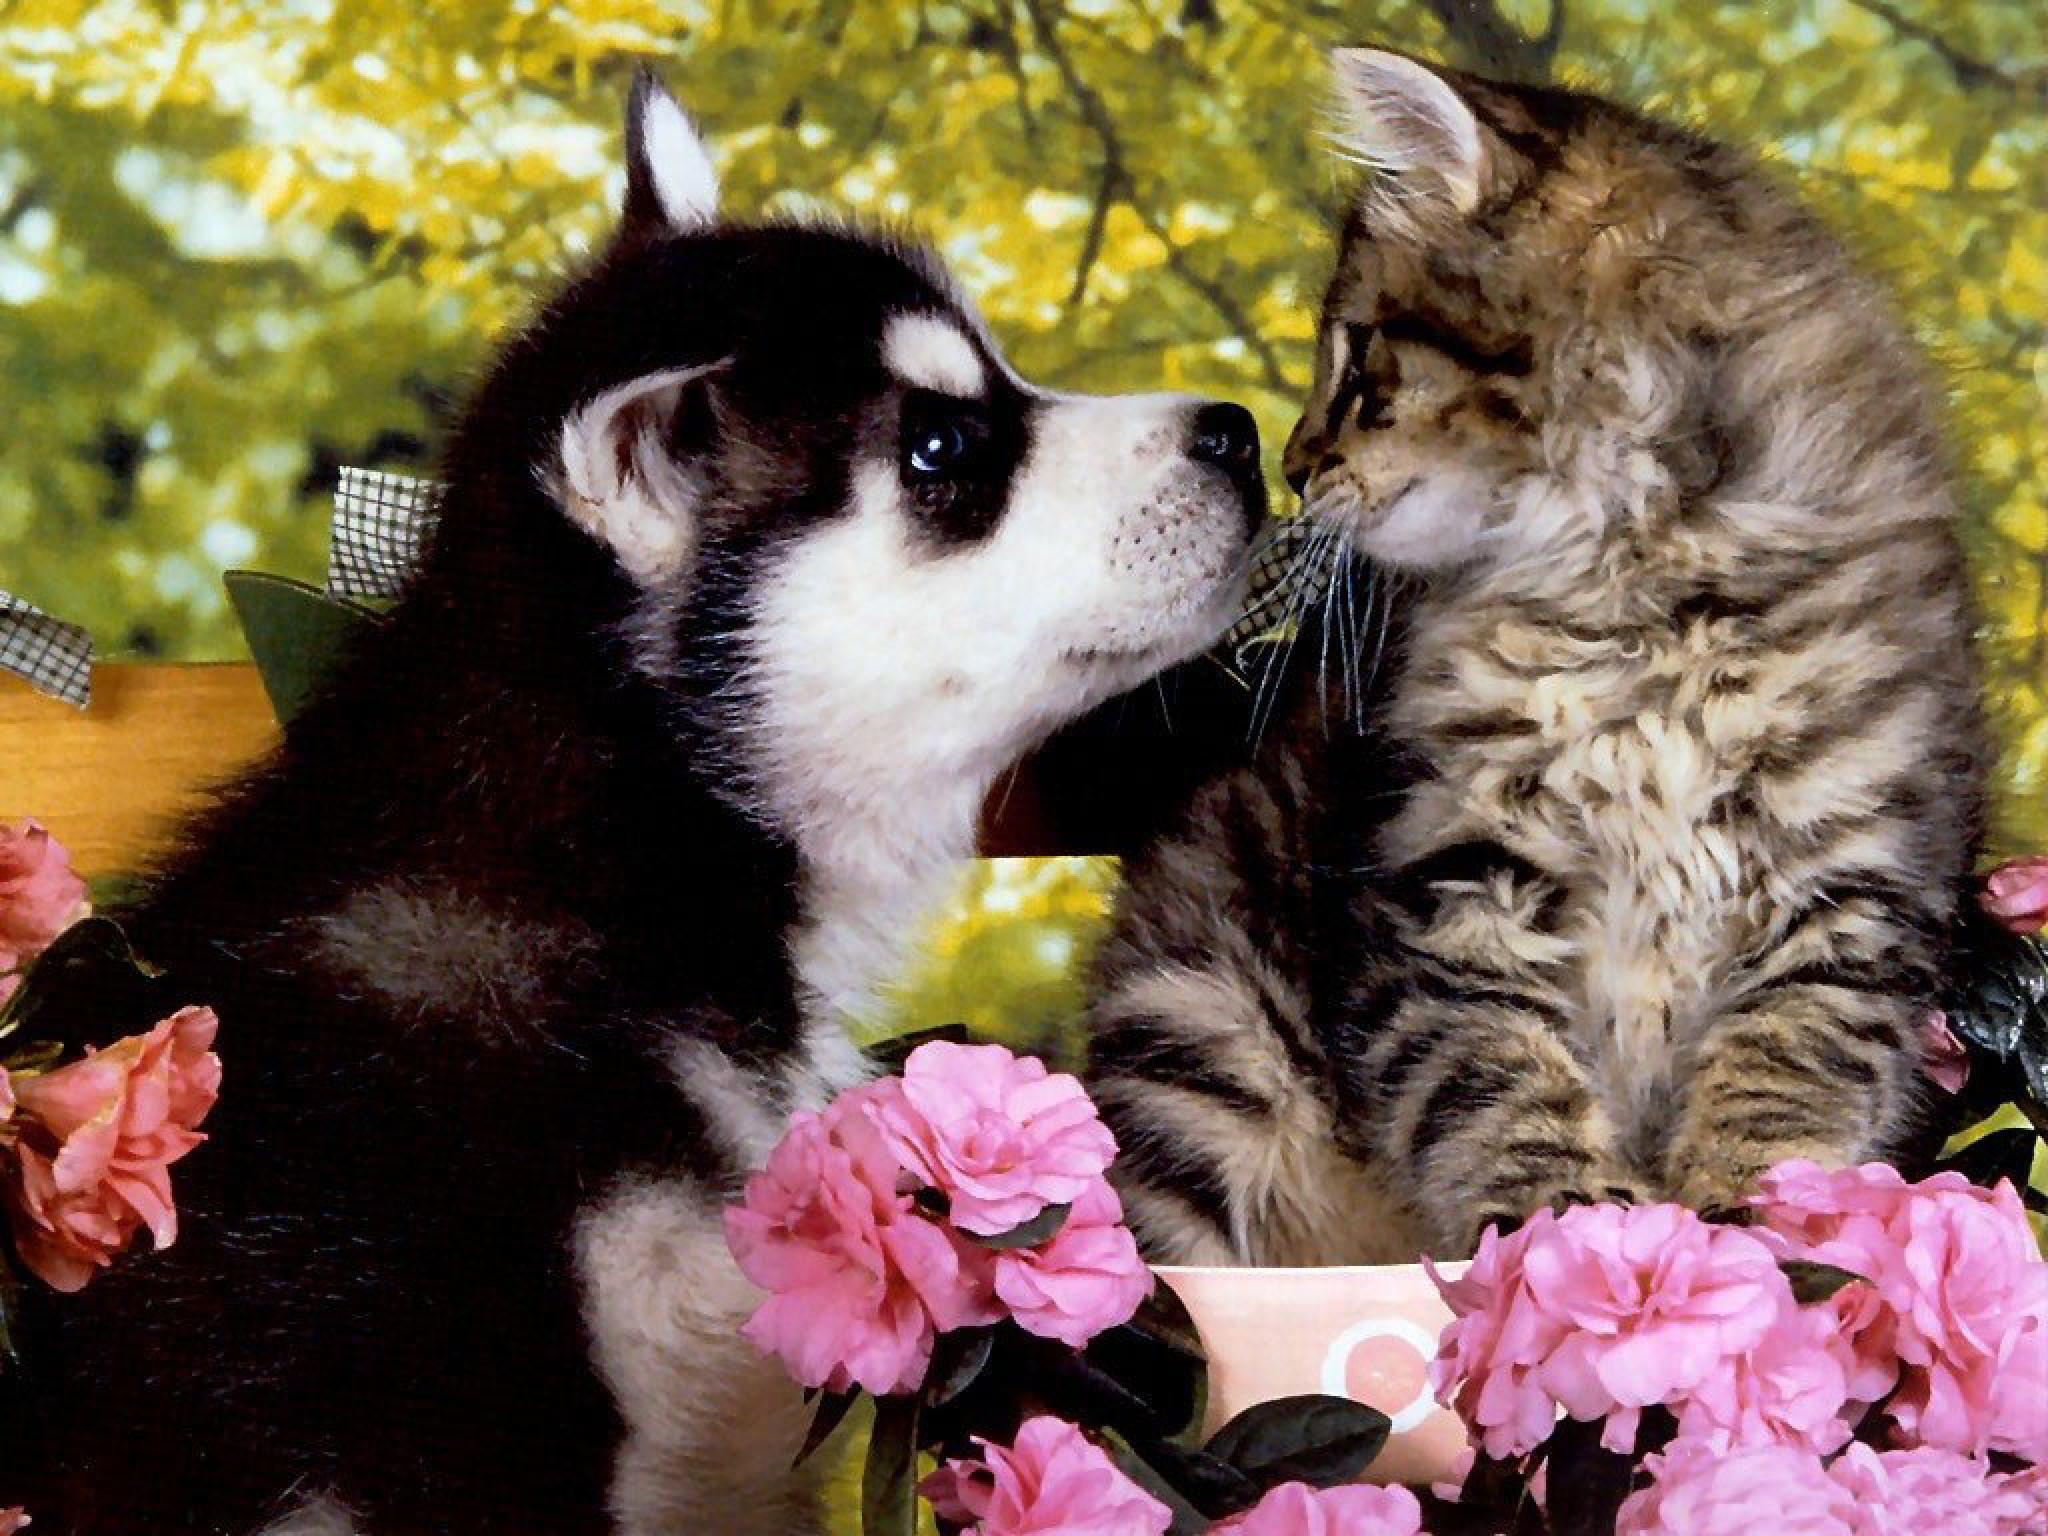 Kittens And Puppies Wallpaper